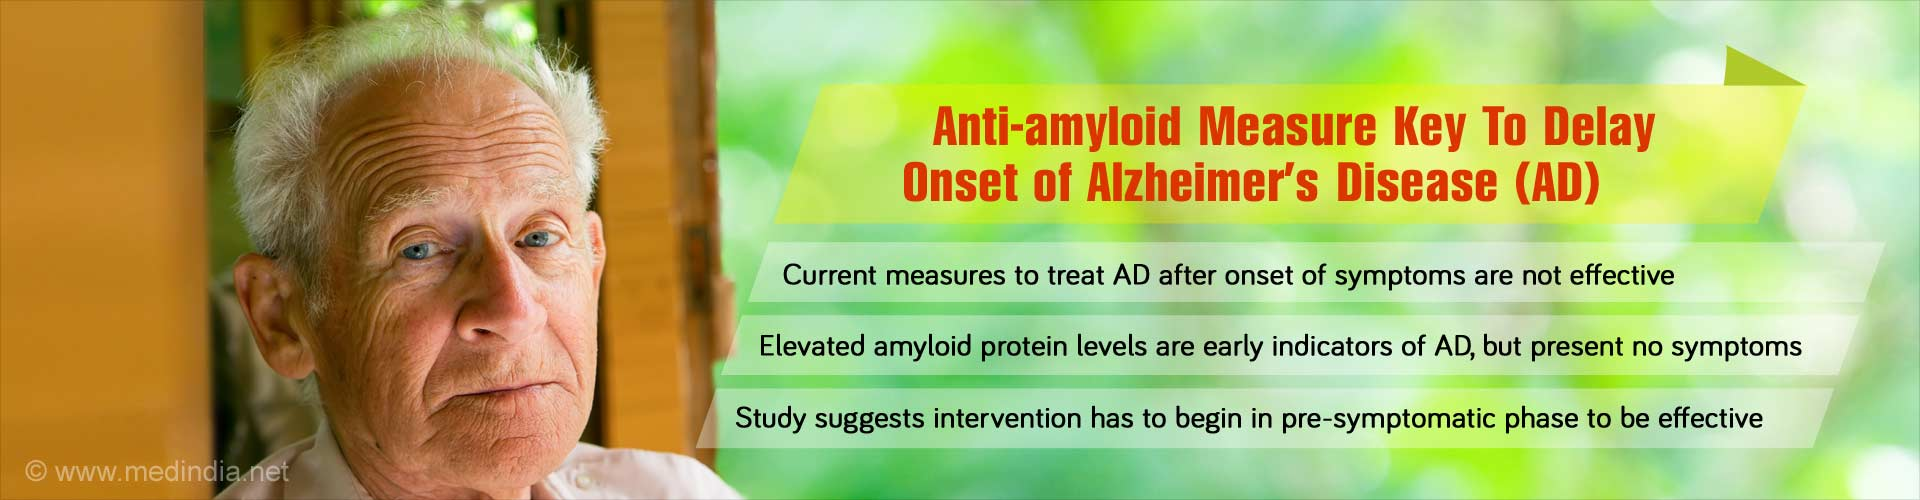 Alzheimer's Disease : Elevated Amyloid Protein Possibly the Earliest Warning Sign